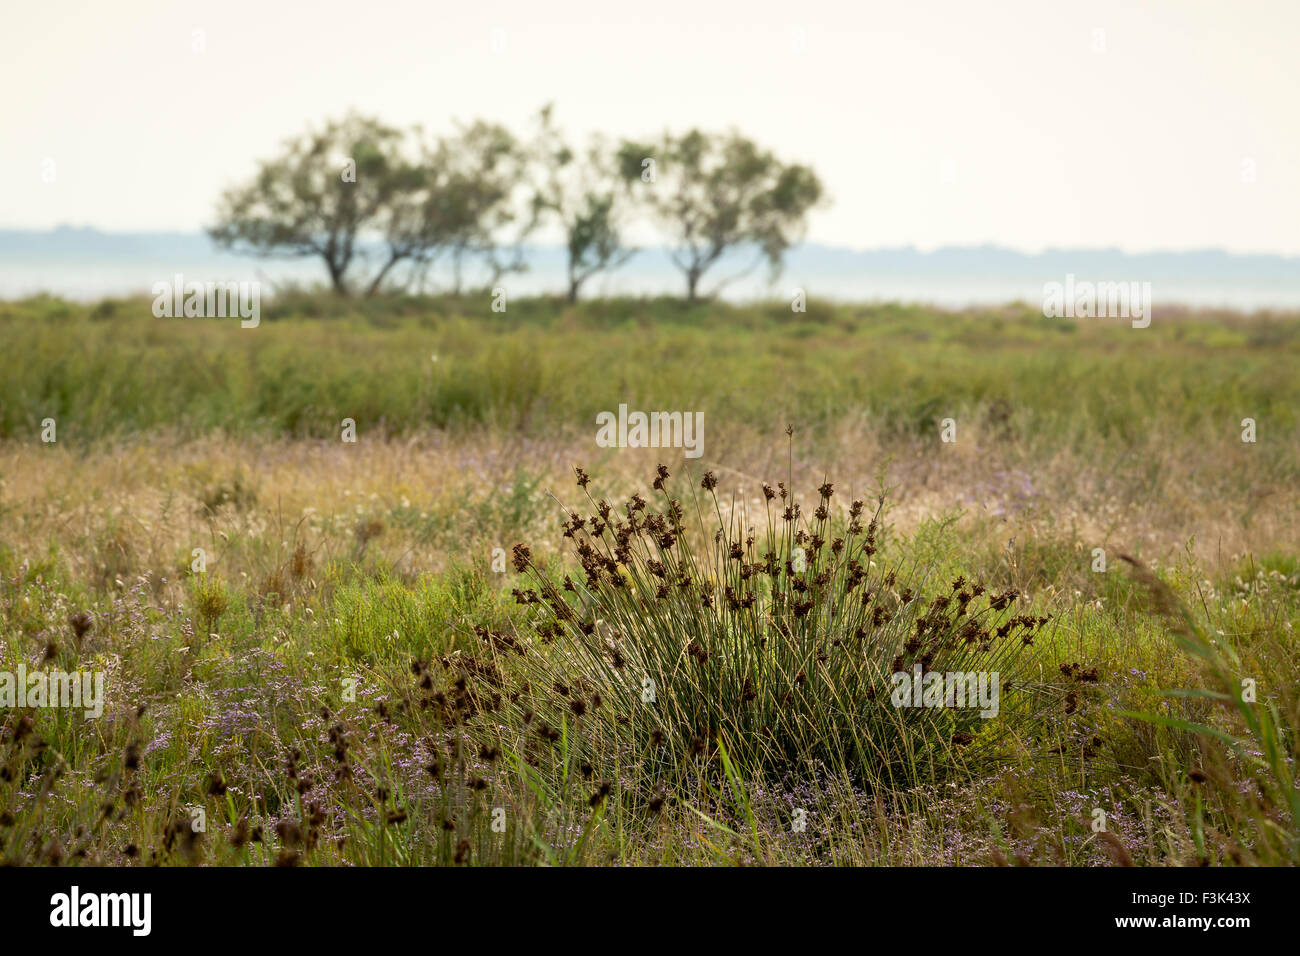 Camargue grasses and flowers - Stock Image